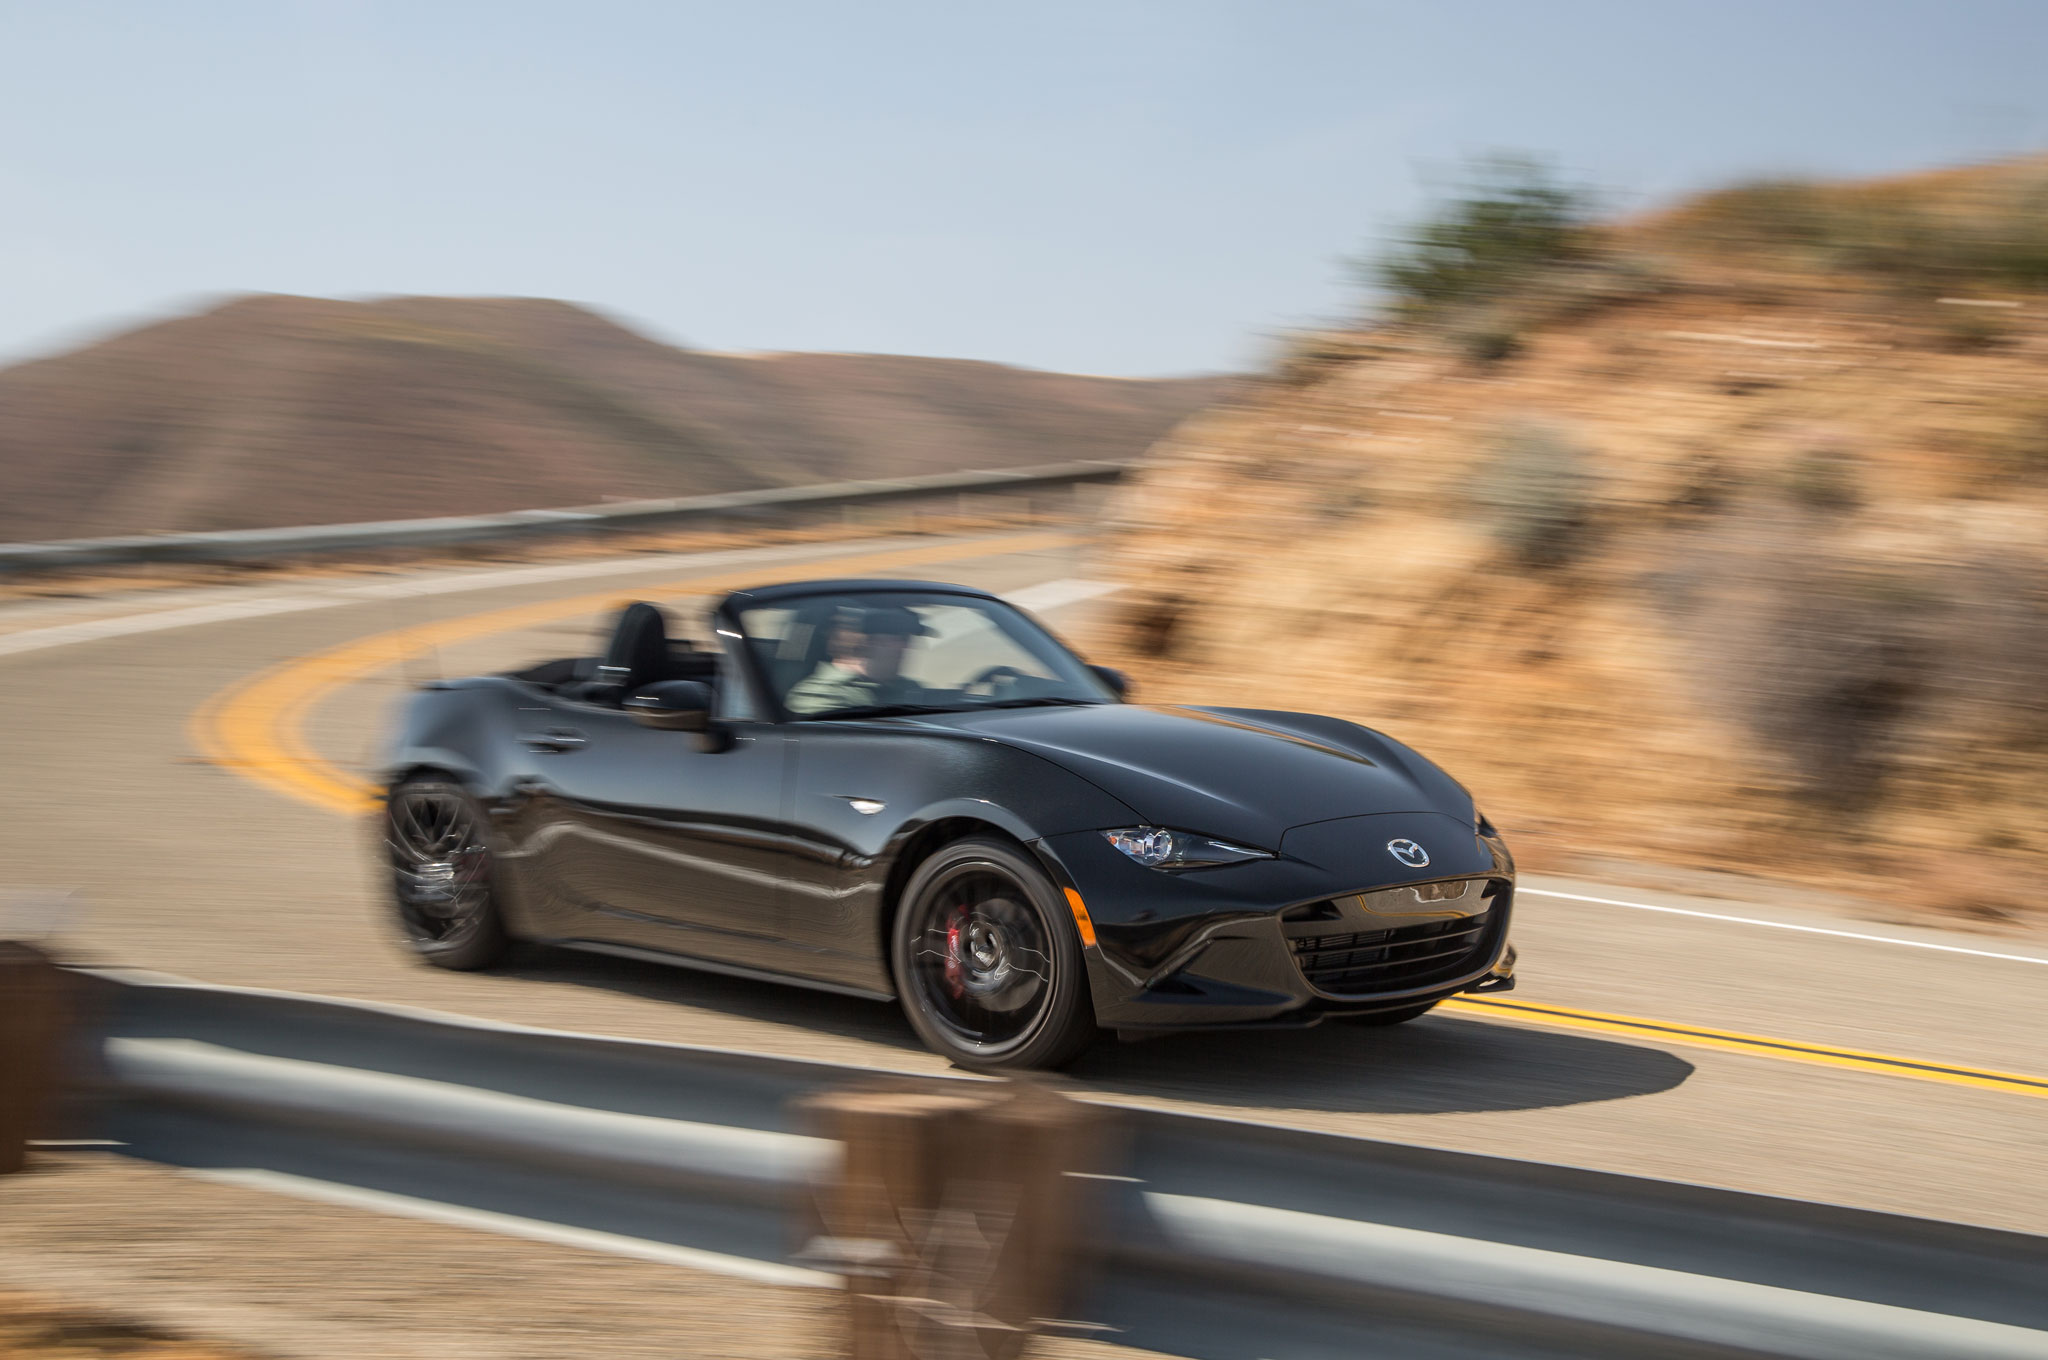 http://st.automobilemag.com/uploads/sites/11/2015/06/2016-Mazda-MX-5-Miata-Club-front-three-quarter-in-motion-02.jpg